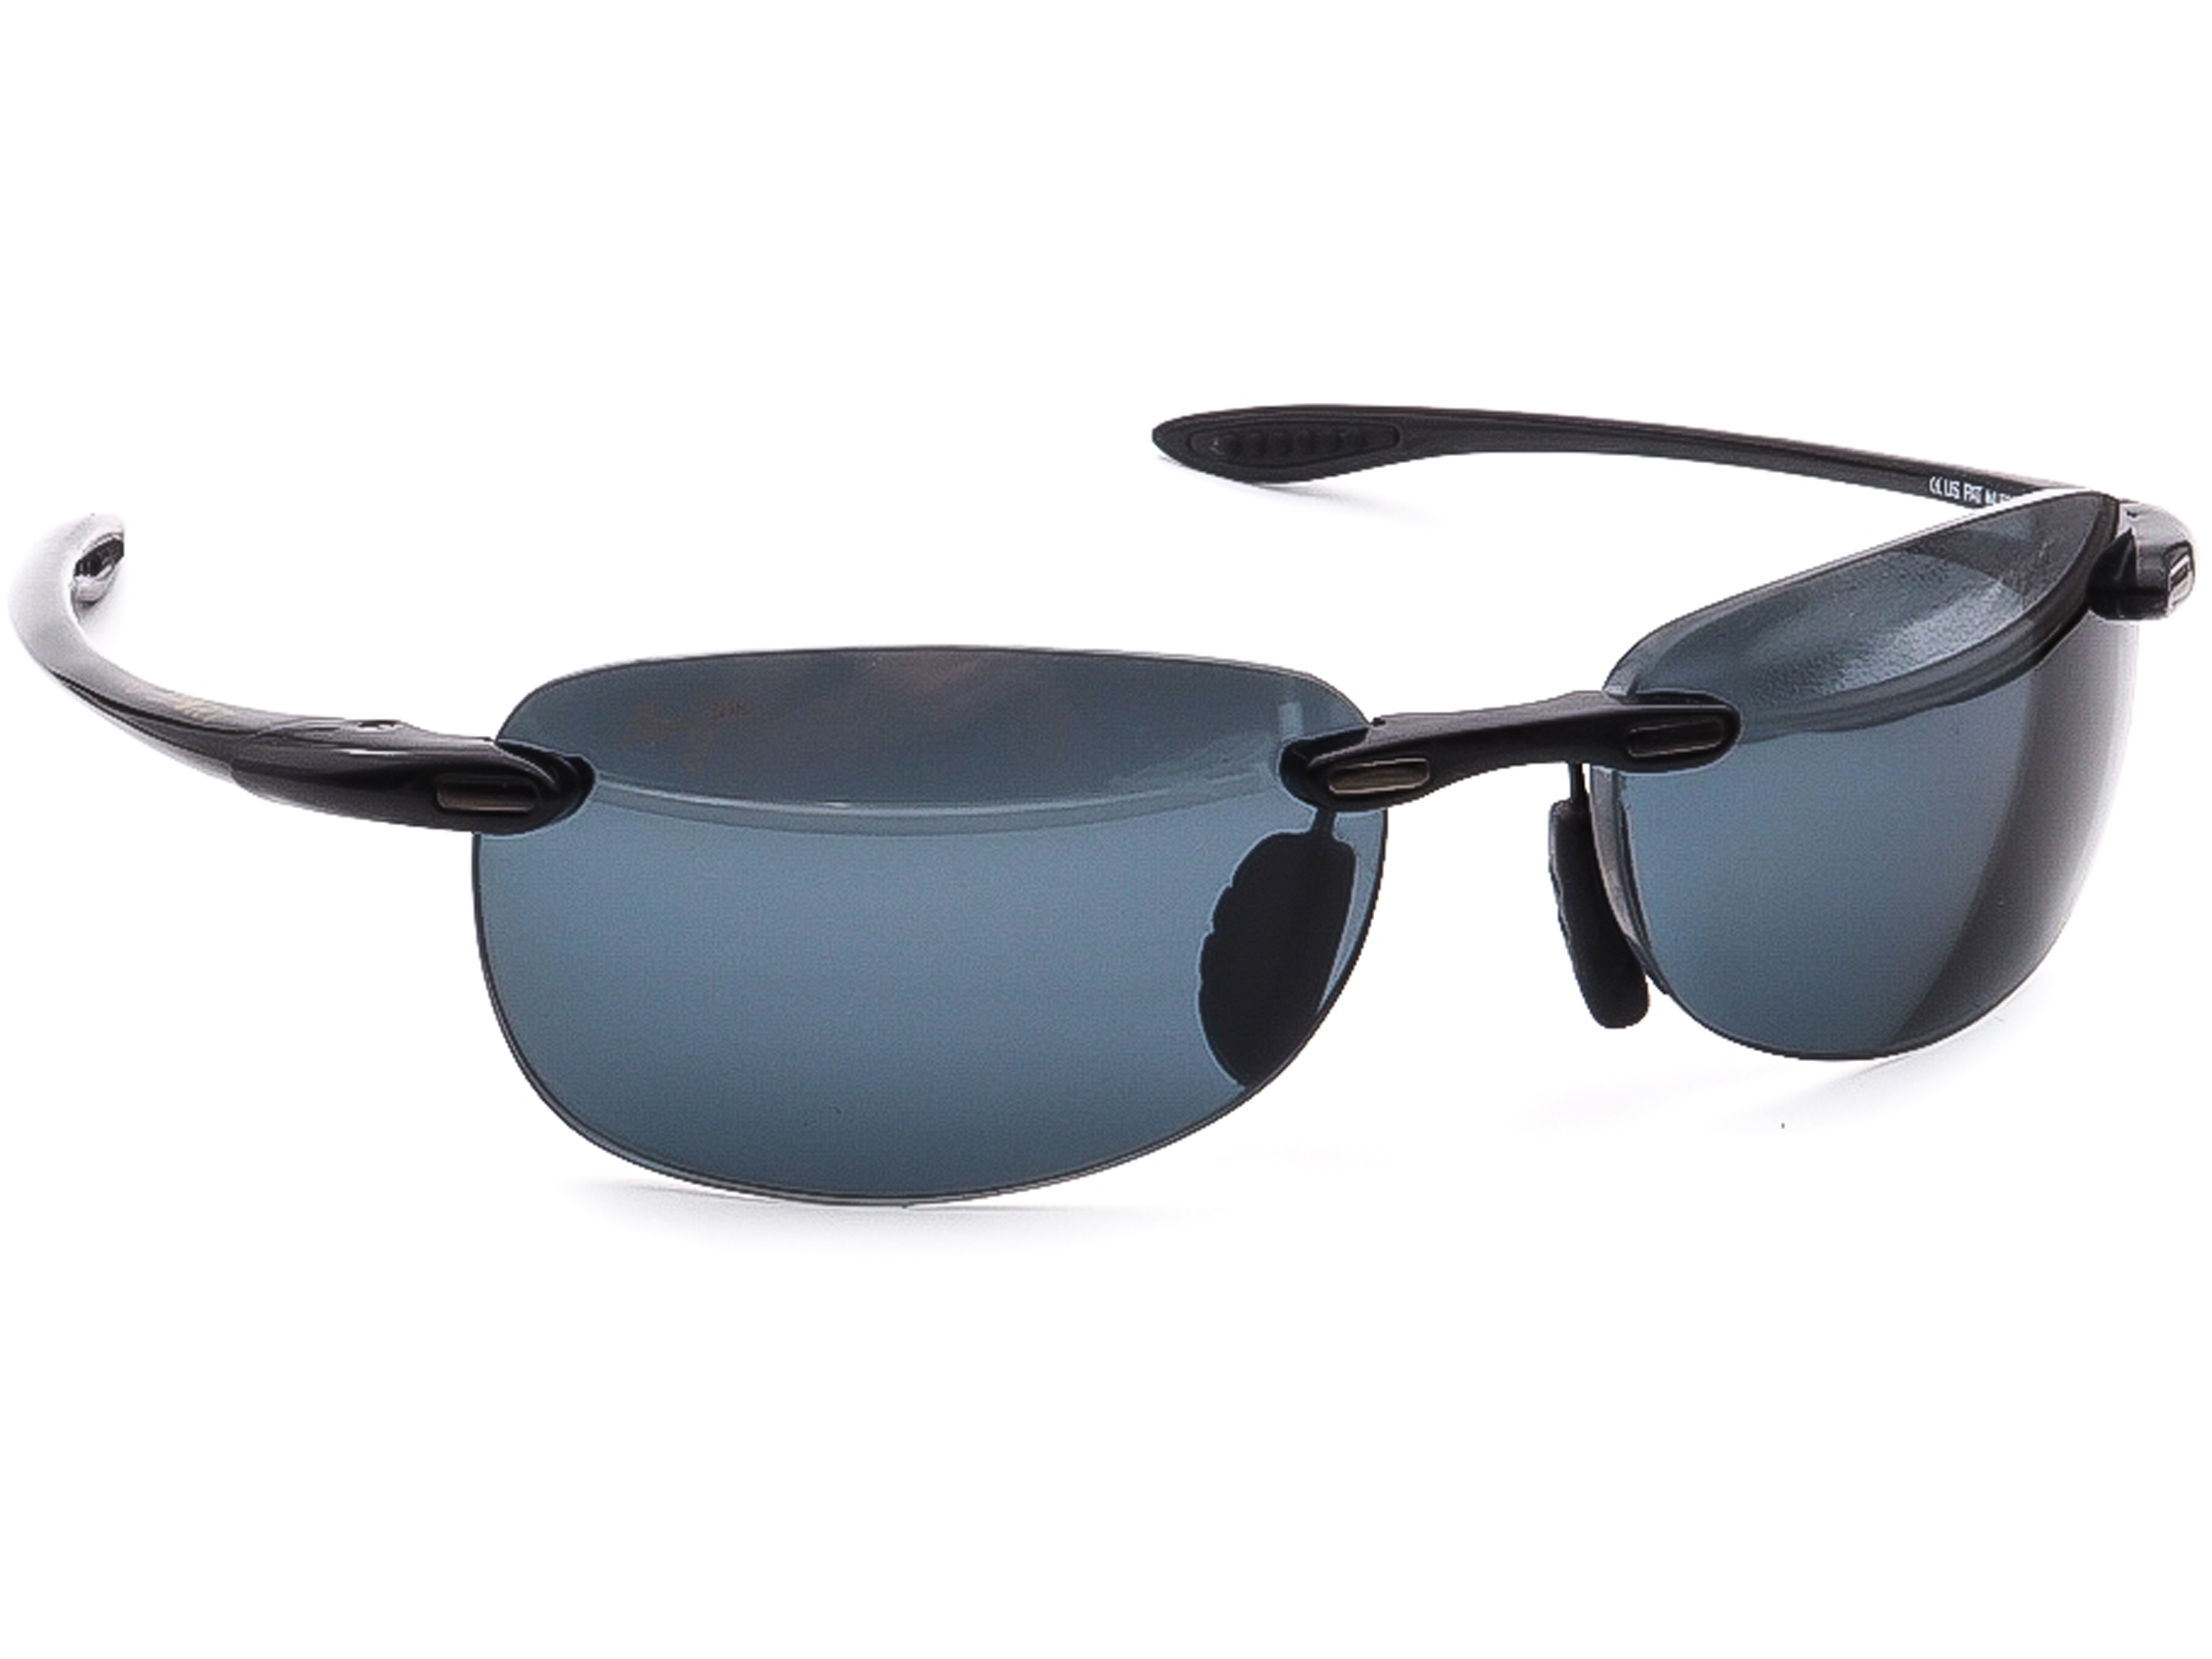 Maui Jim MJ-408-02 Sport Sunglasses Frame Only